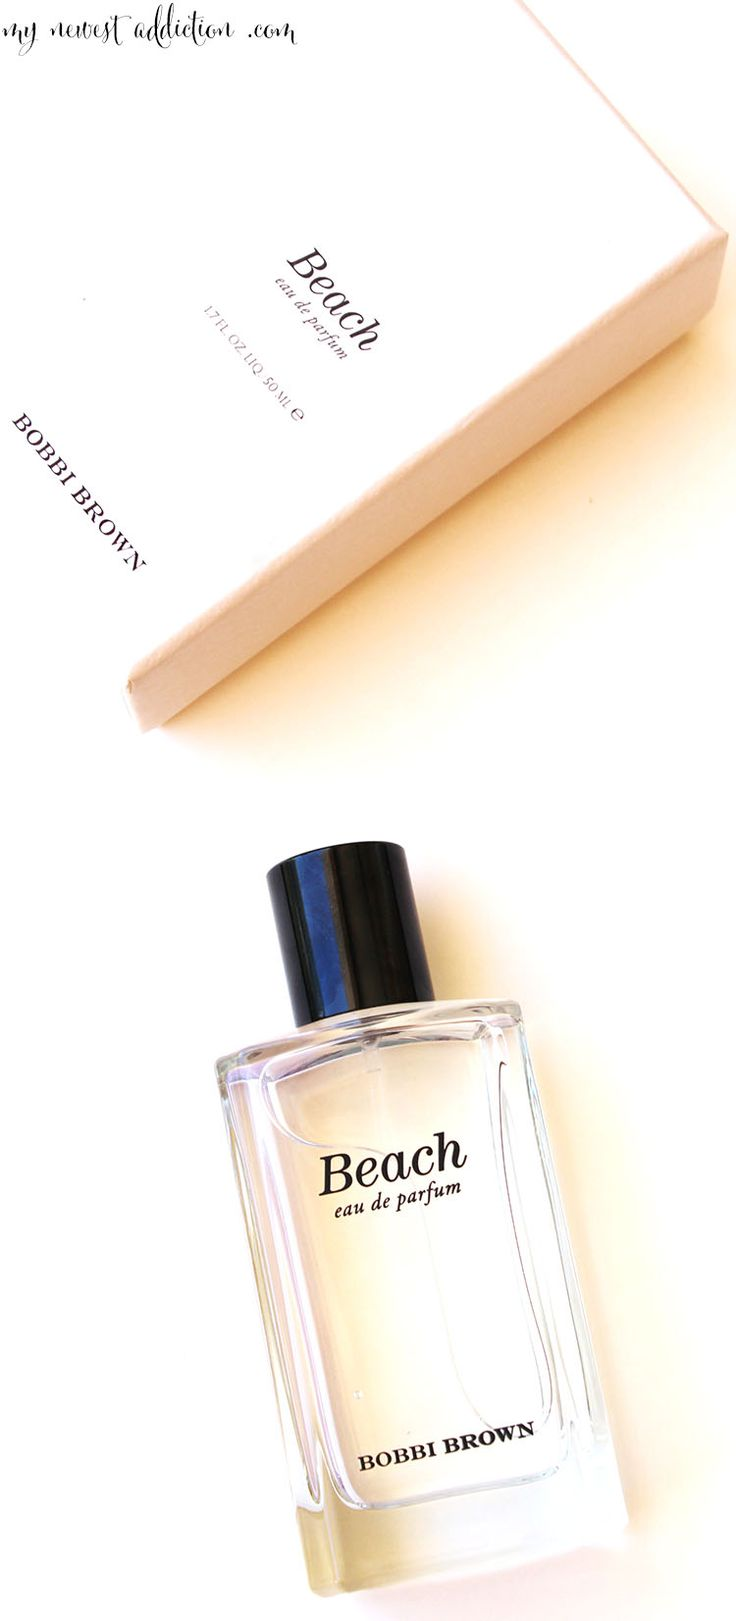 Bobbi Brown Beach Eau de Parfum - My Newest Addiction